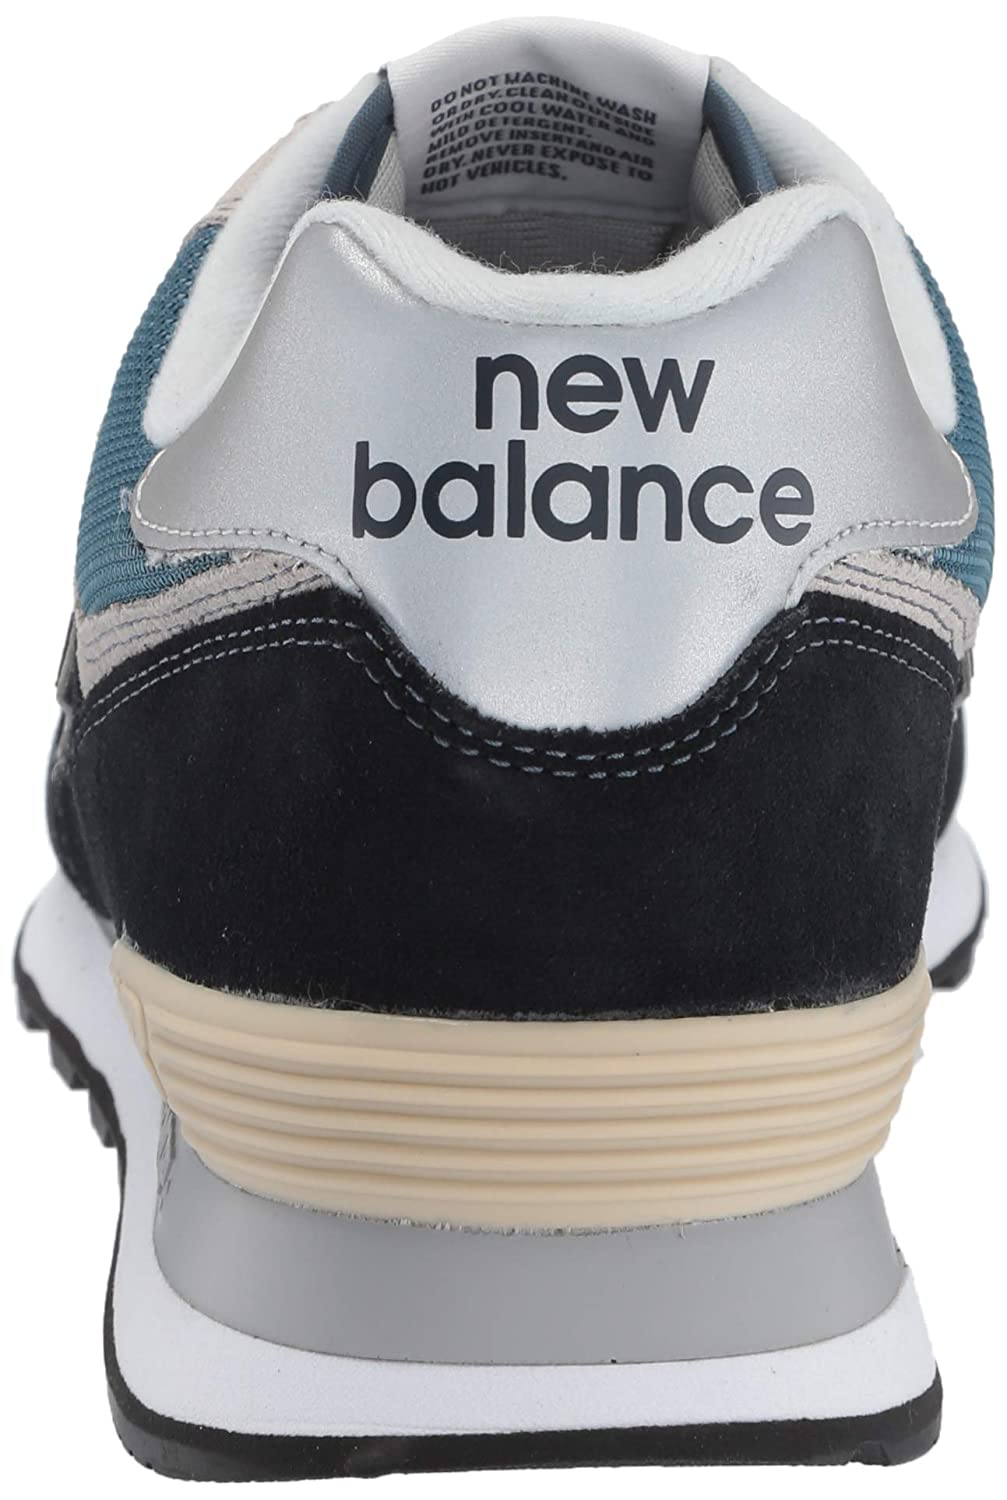 official photos 99273 68f37 Amazon.com   New Balance Men s Iconic 574 Sneaker   Fashion Sneakers